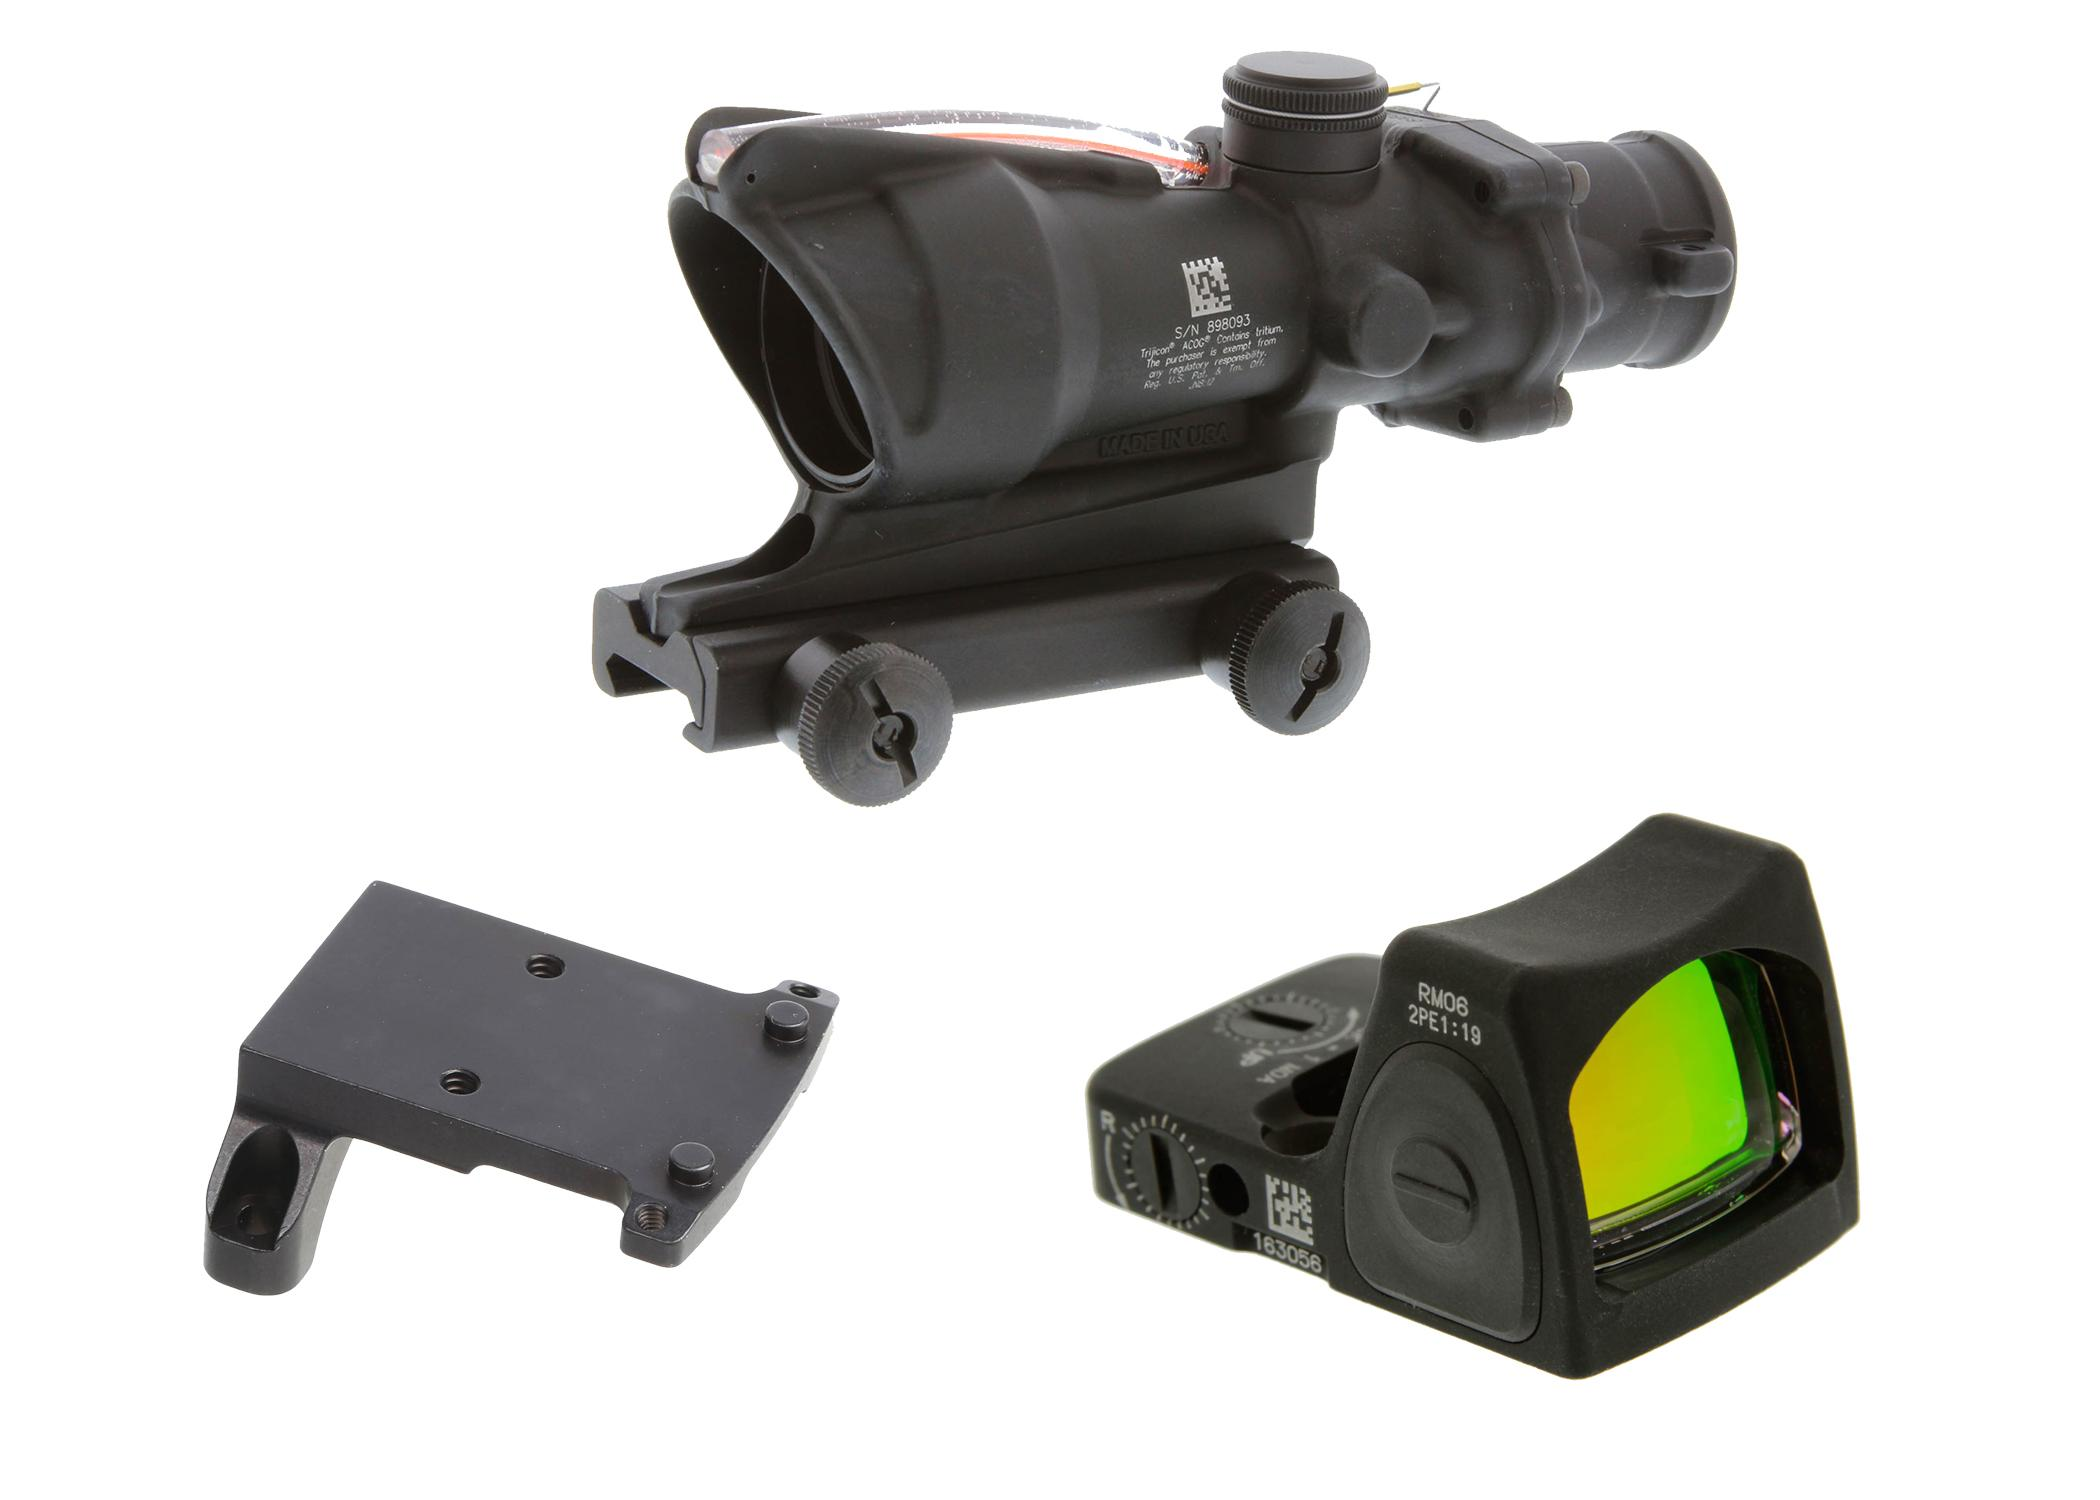 Trijicon ACOG 4x32 Scope with Red Dual Illumination ACSS Reticle with a Trijicon RMR Sight Adjustable (LED) - 3.25 MOA Red Dot and a Trijicon, Mount ACOG Adaptor Plate, For Red Dot Sights, Matte